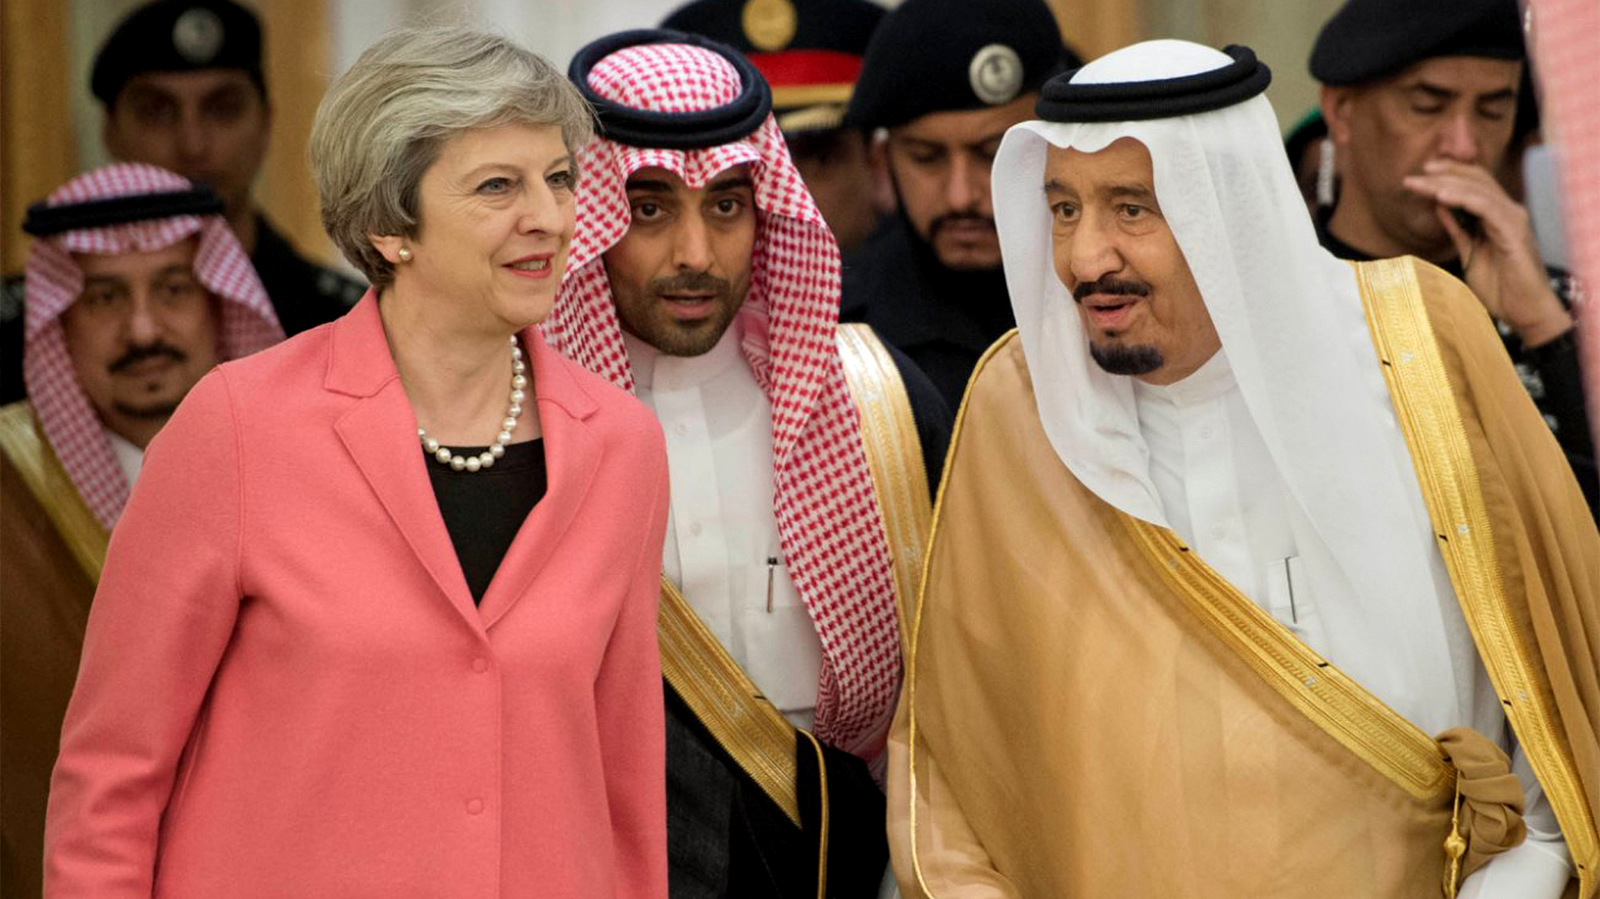 Saudi King Salman, right, receives British Prime Minister Theresa May, in Riyadh, Saudi Arabia, Wednesday, April 5, 2017. (AP Photo)